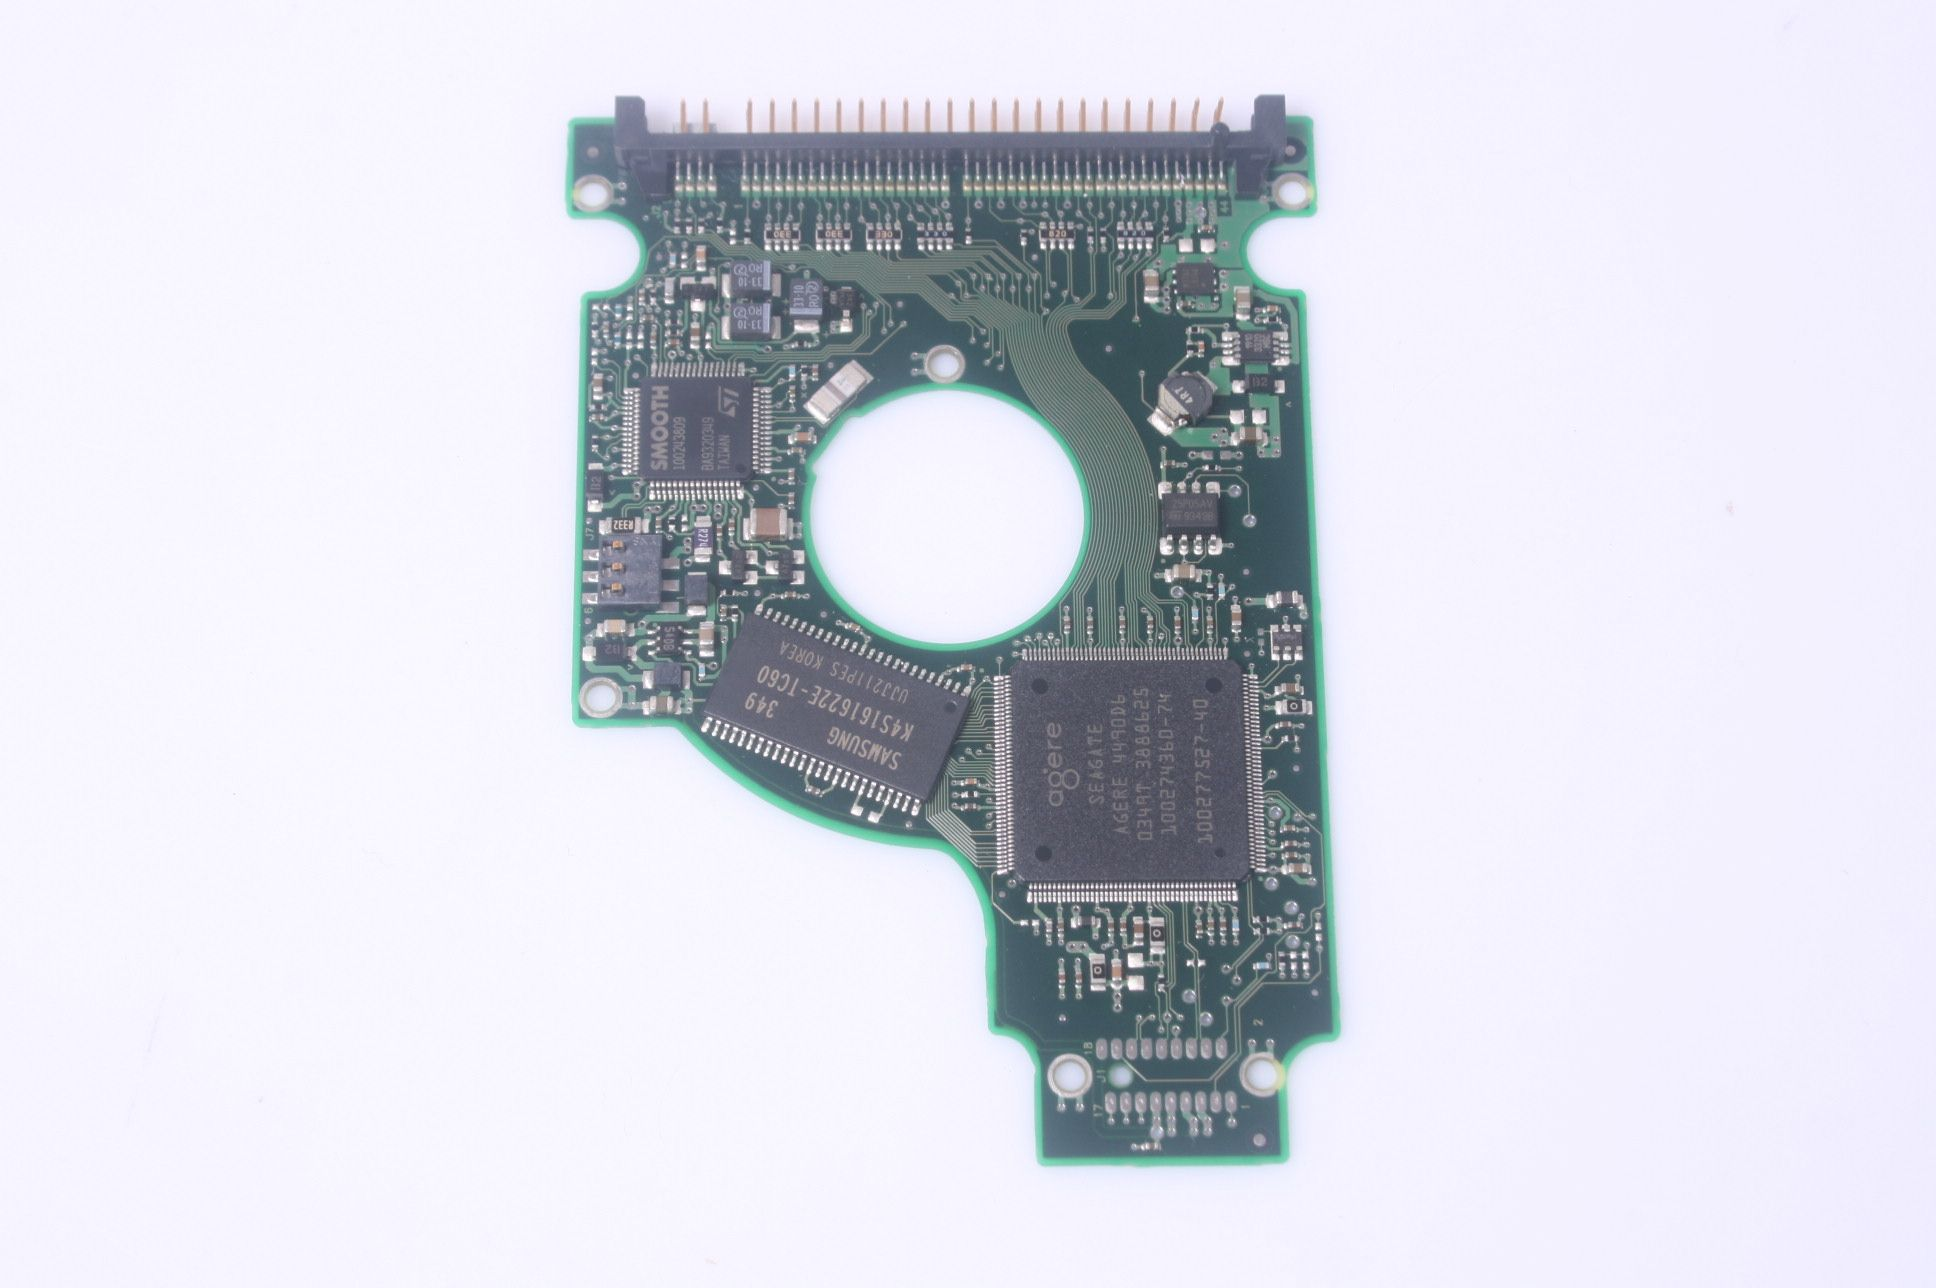 SEAGATE ST93015A 30GB  2.5 IDE HARD DRIVE / PCB (CIRCUIT BOARD) ONLY FOR DA